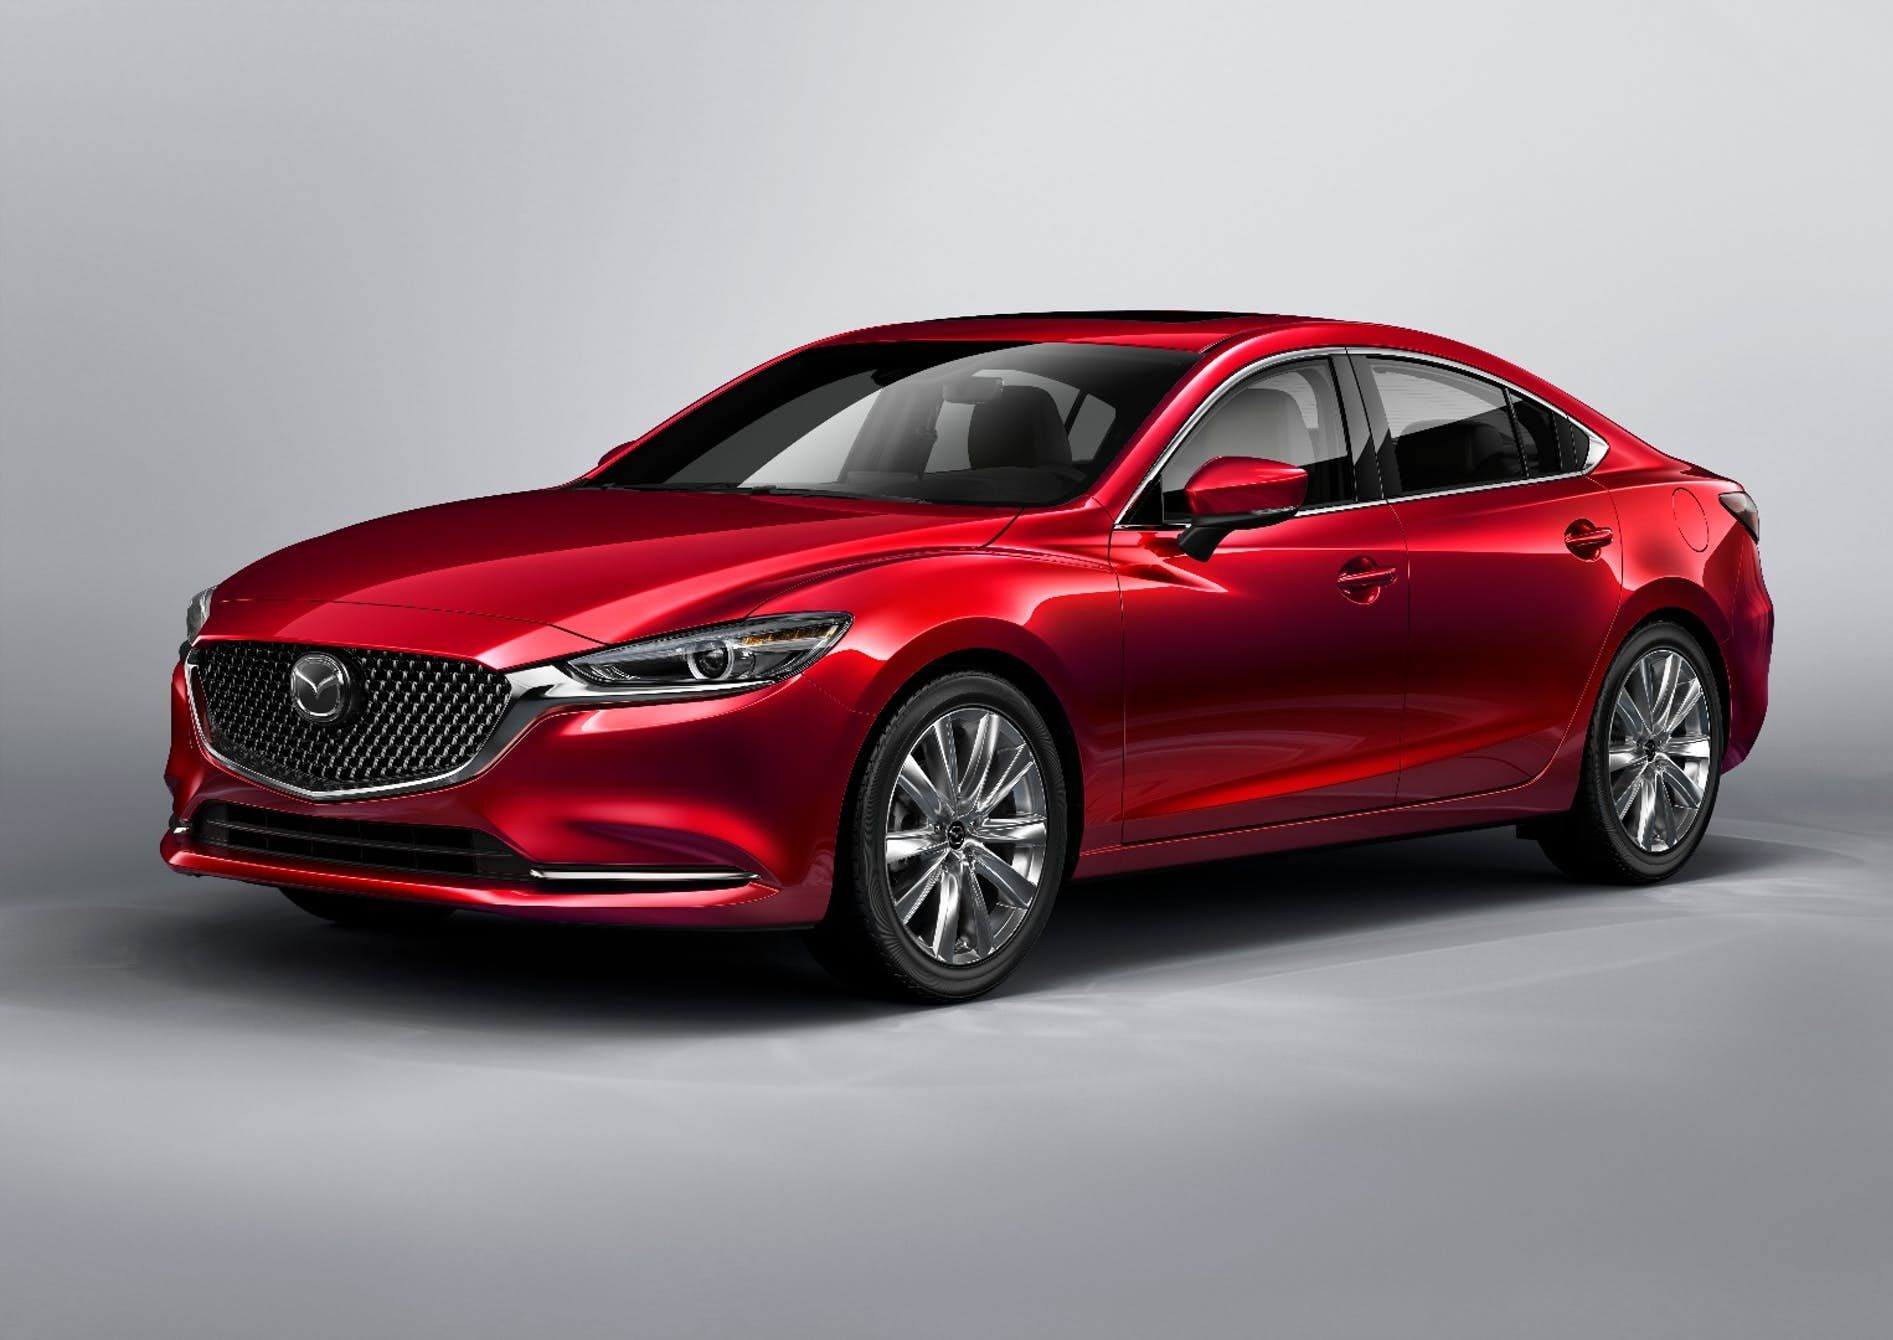 The New Mazda 6 Ditches The Horizontal Slat Grille For A Much More Macho Wire Mesh Grille Mazda Cars Mazda Mazda 6